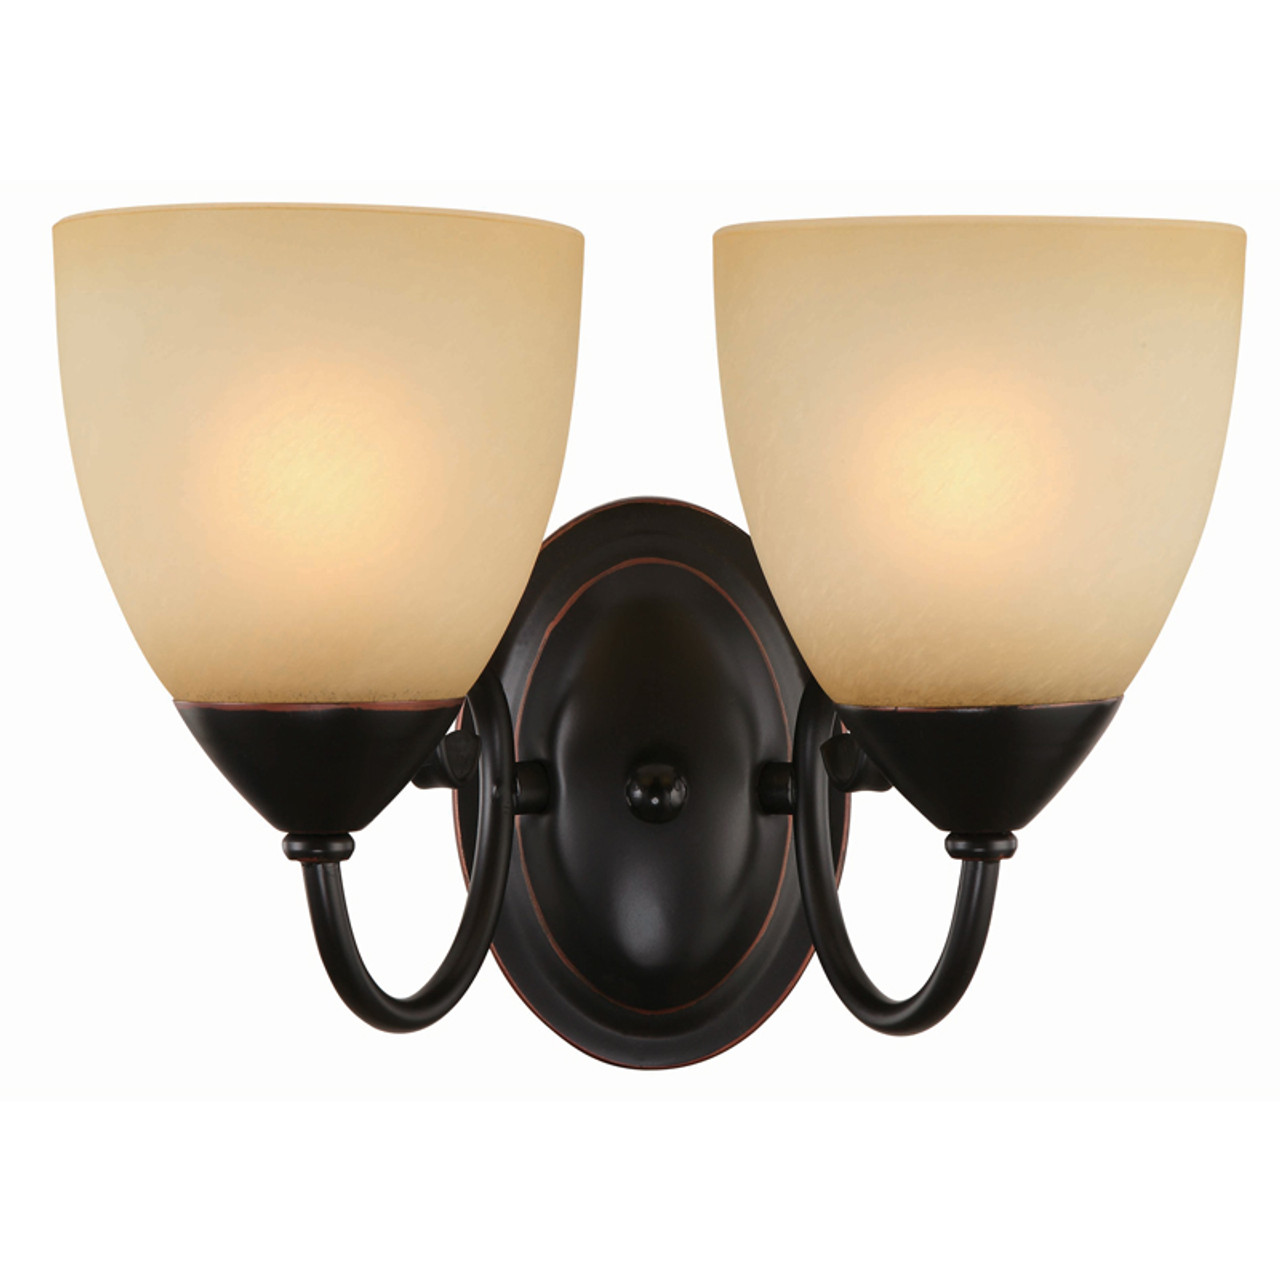 Oil rubbed bronze 2 light wall sconce bathroom fixture 16 8212 oil rubbed bronze 2 light wall sconce bathroom fixture 16 8212 aloadofball Image collections